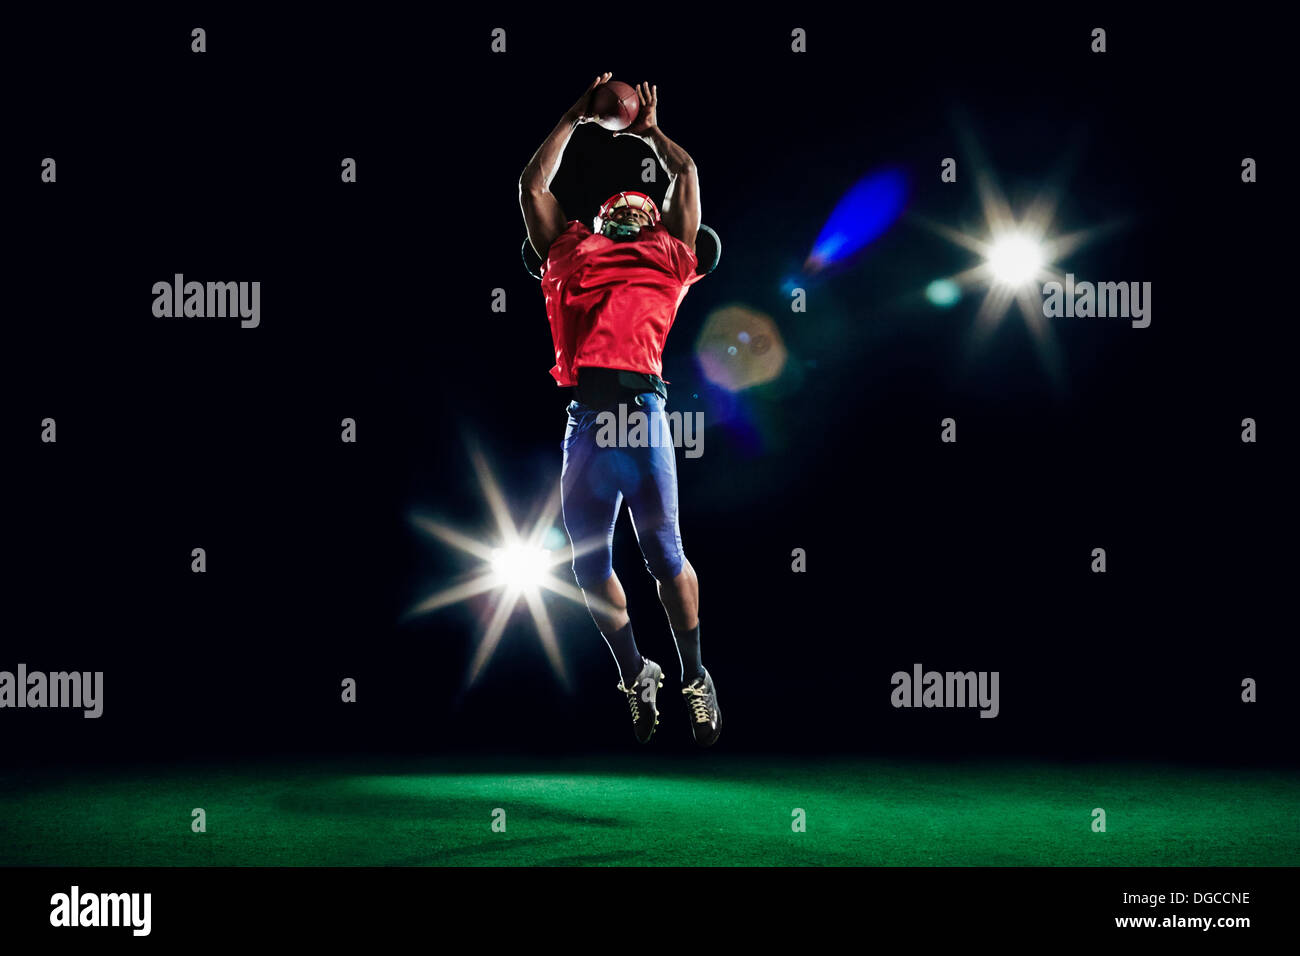 American football player catching ball - Stock Image